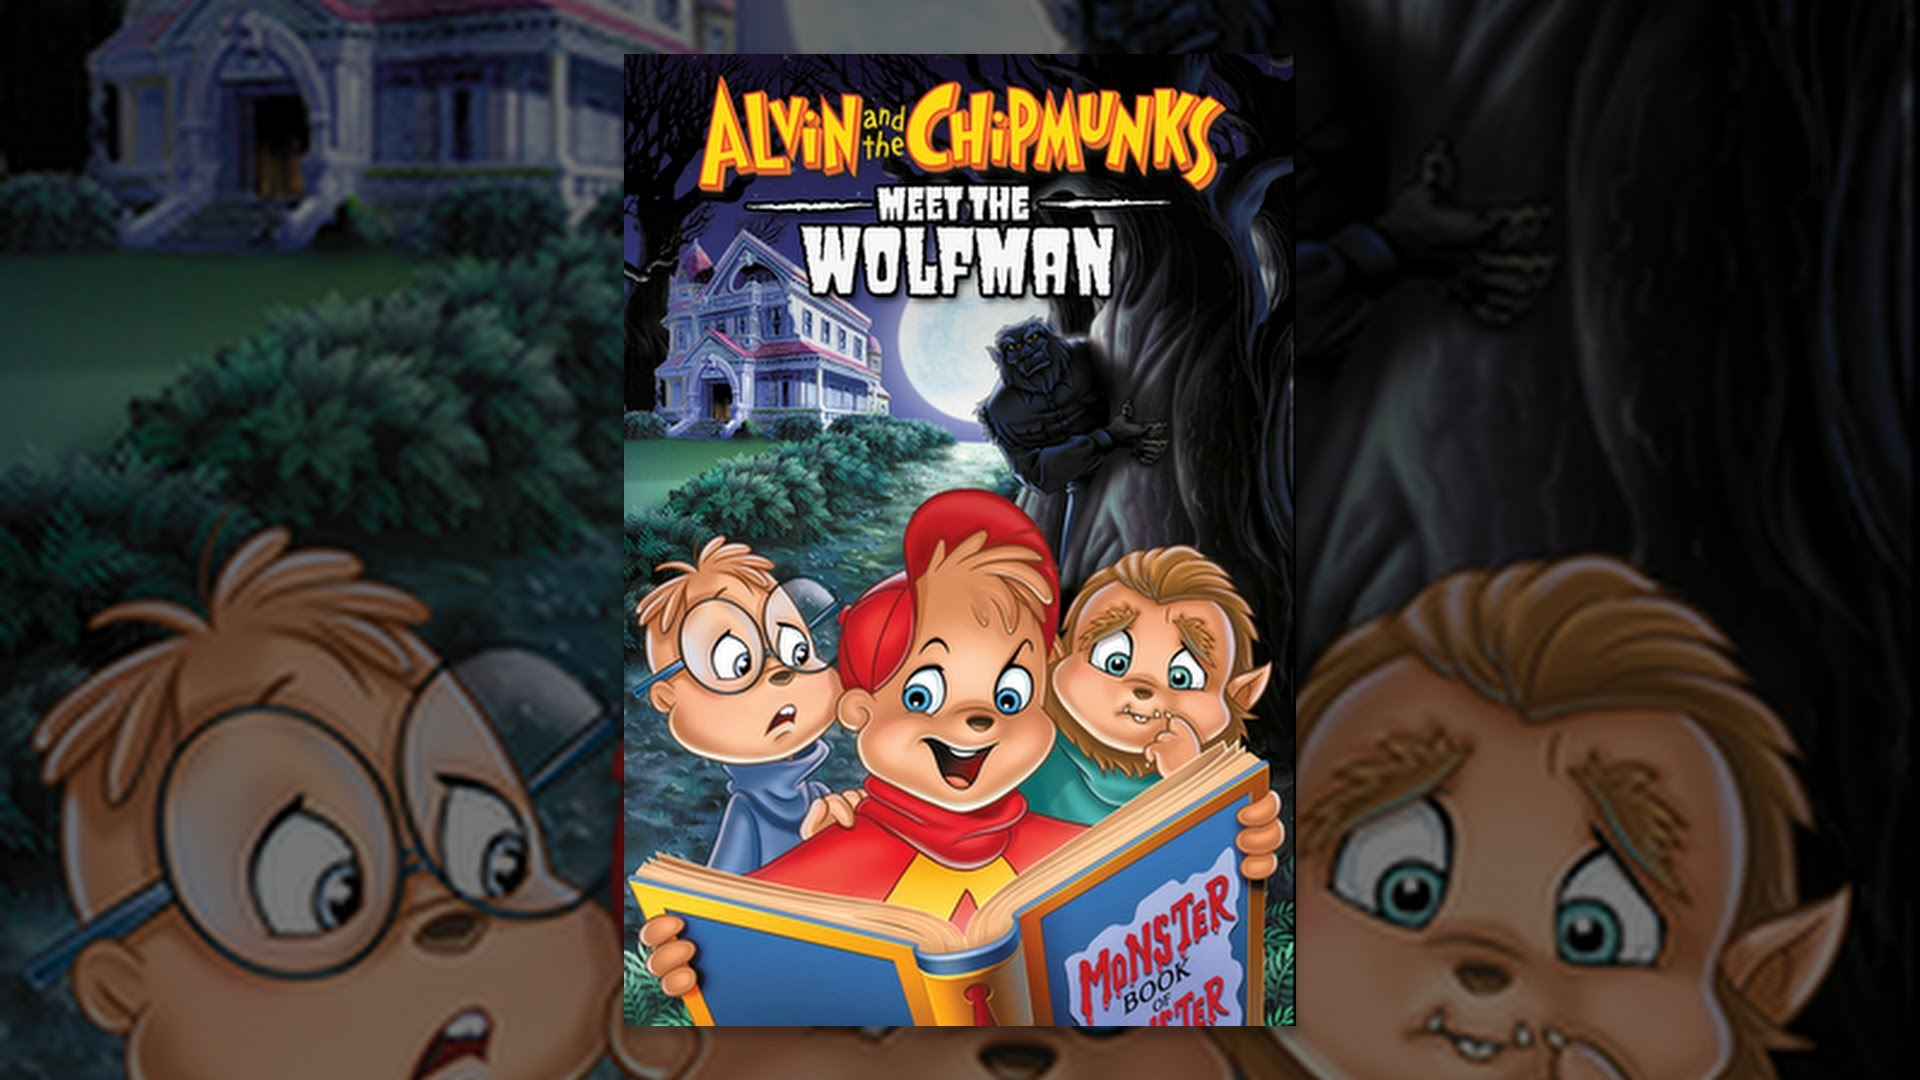 alvin and the chipmunks meet wolfman pictures